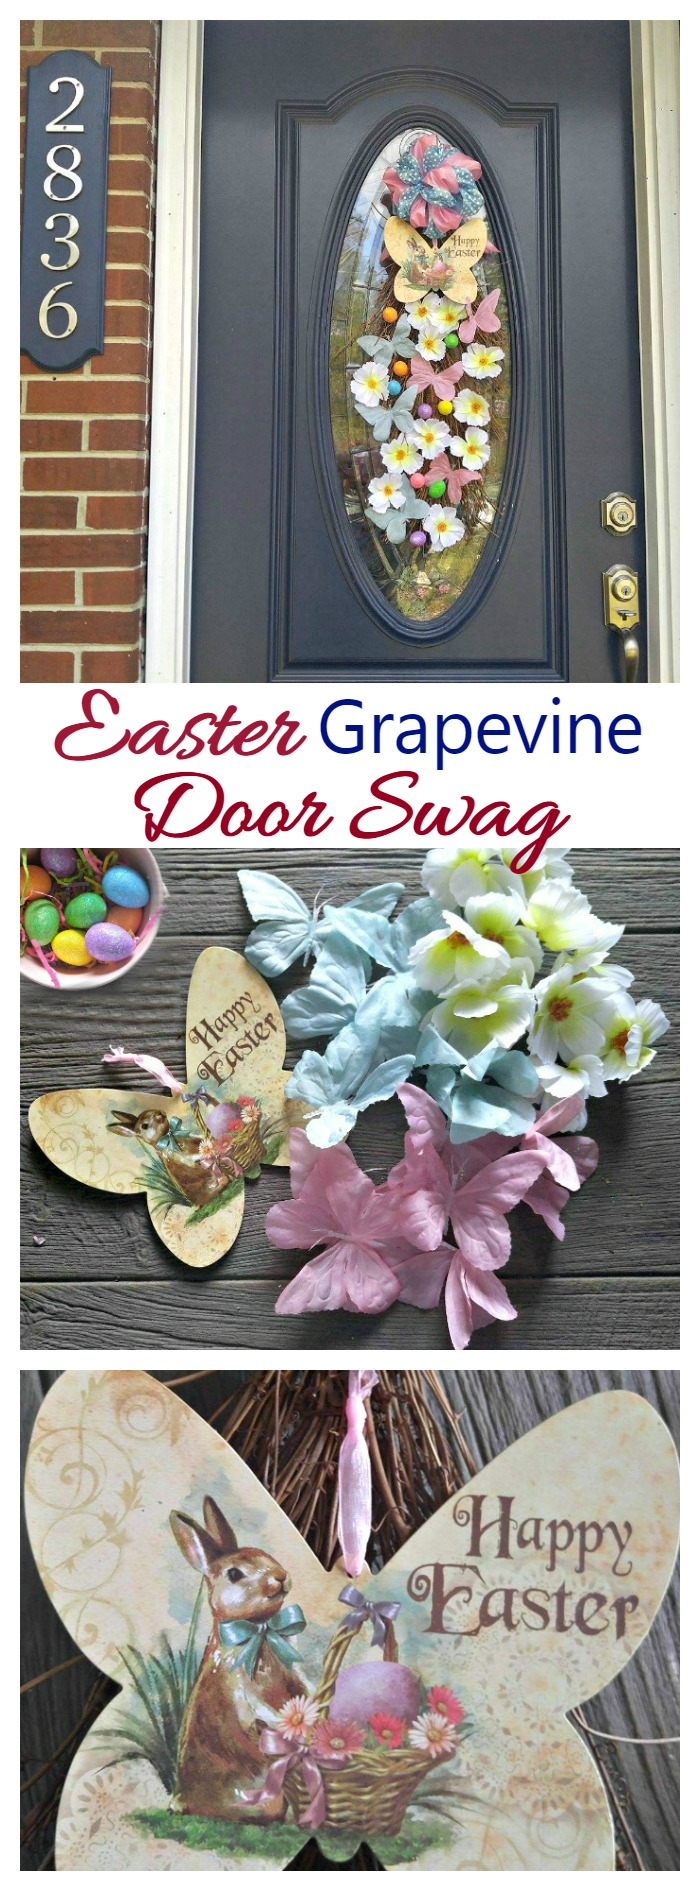 This Easter Grapevine Door Swag is easy to make and welcomes guests with a burst of spring in pretty pastel shades of bunnies, eggs, flowers and butterflies.